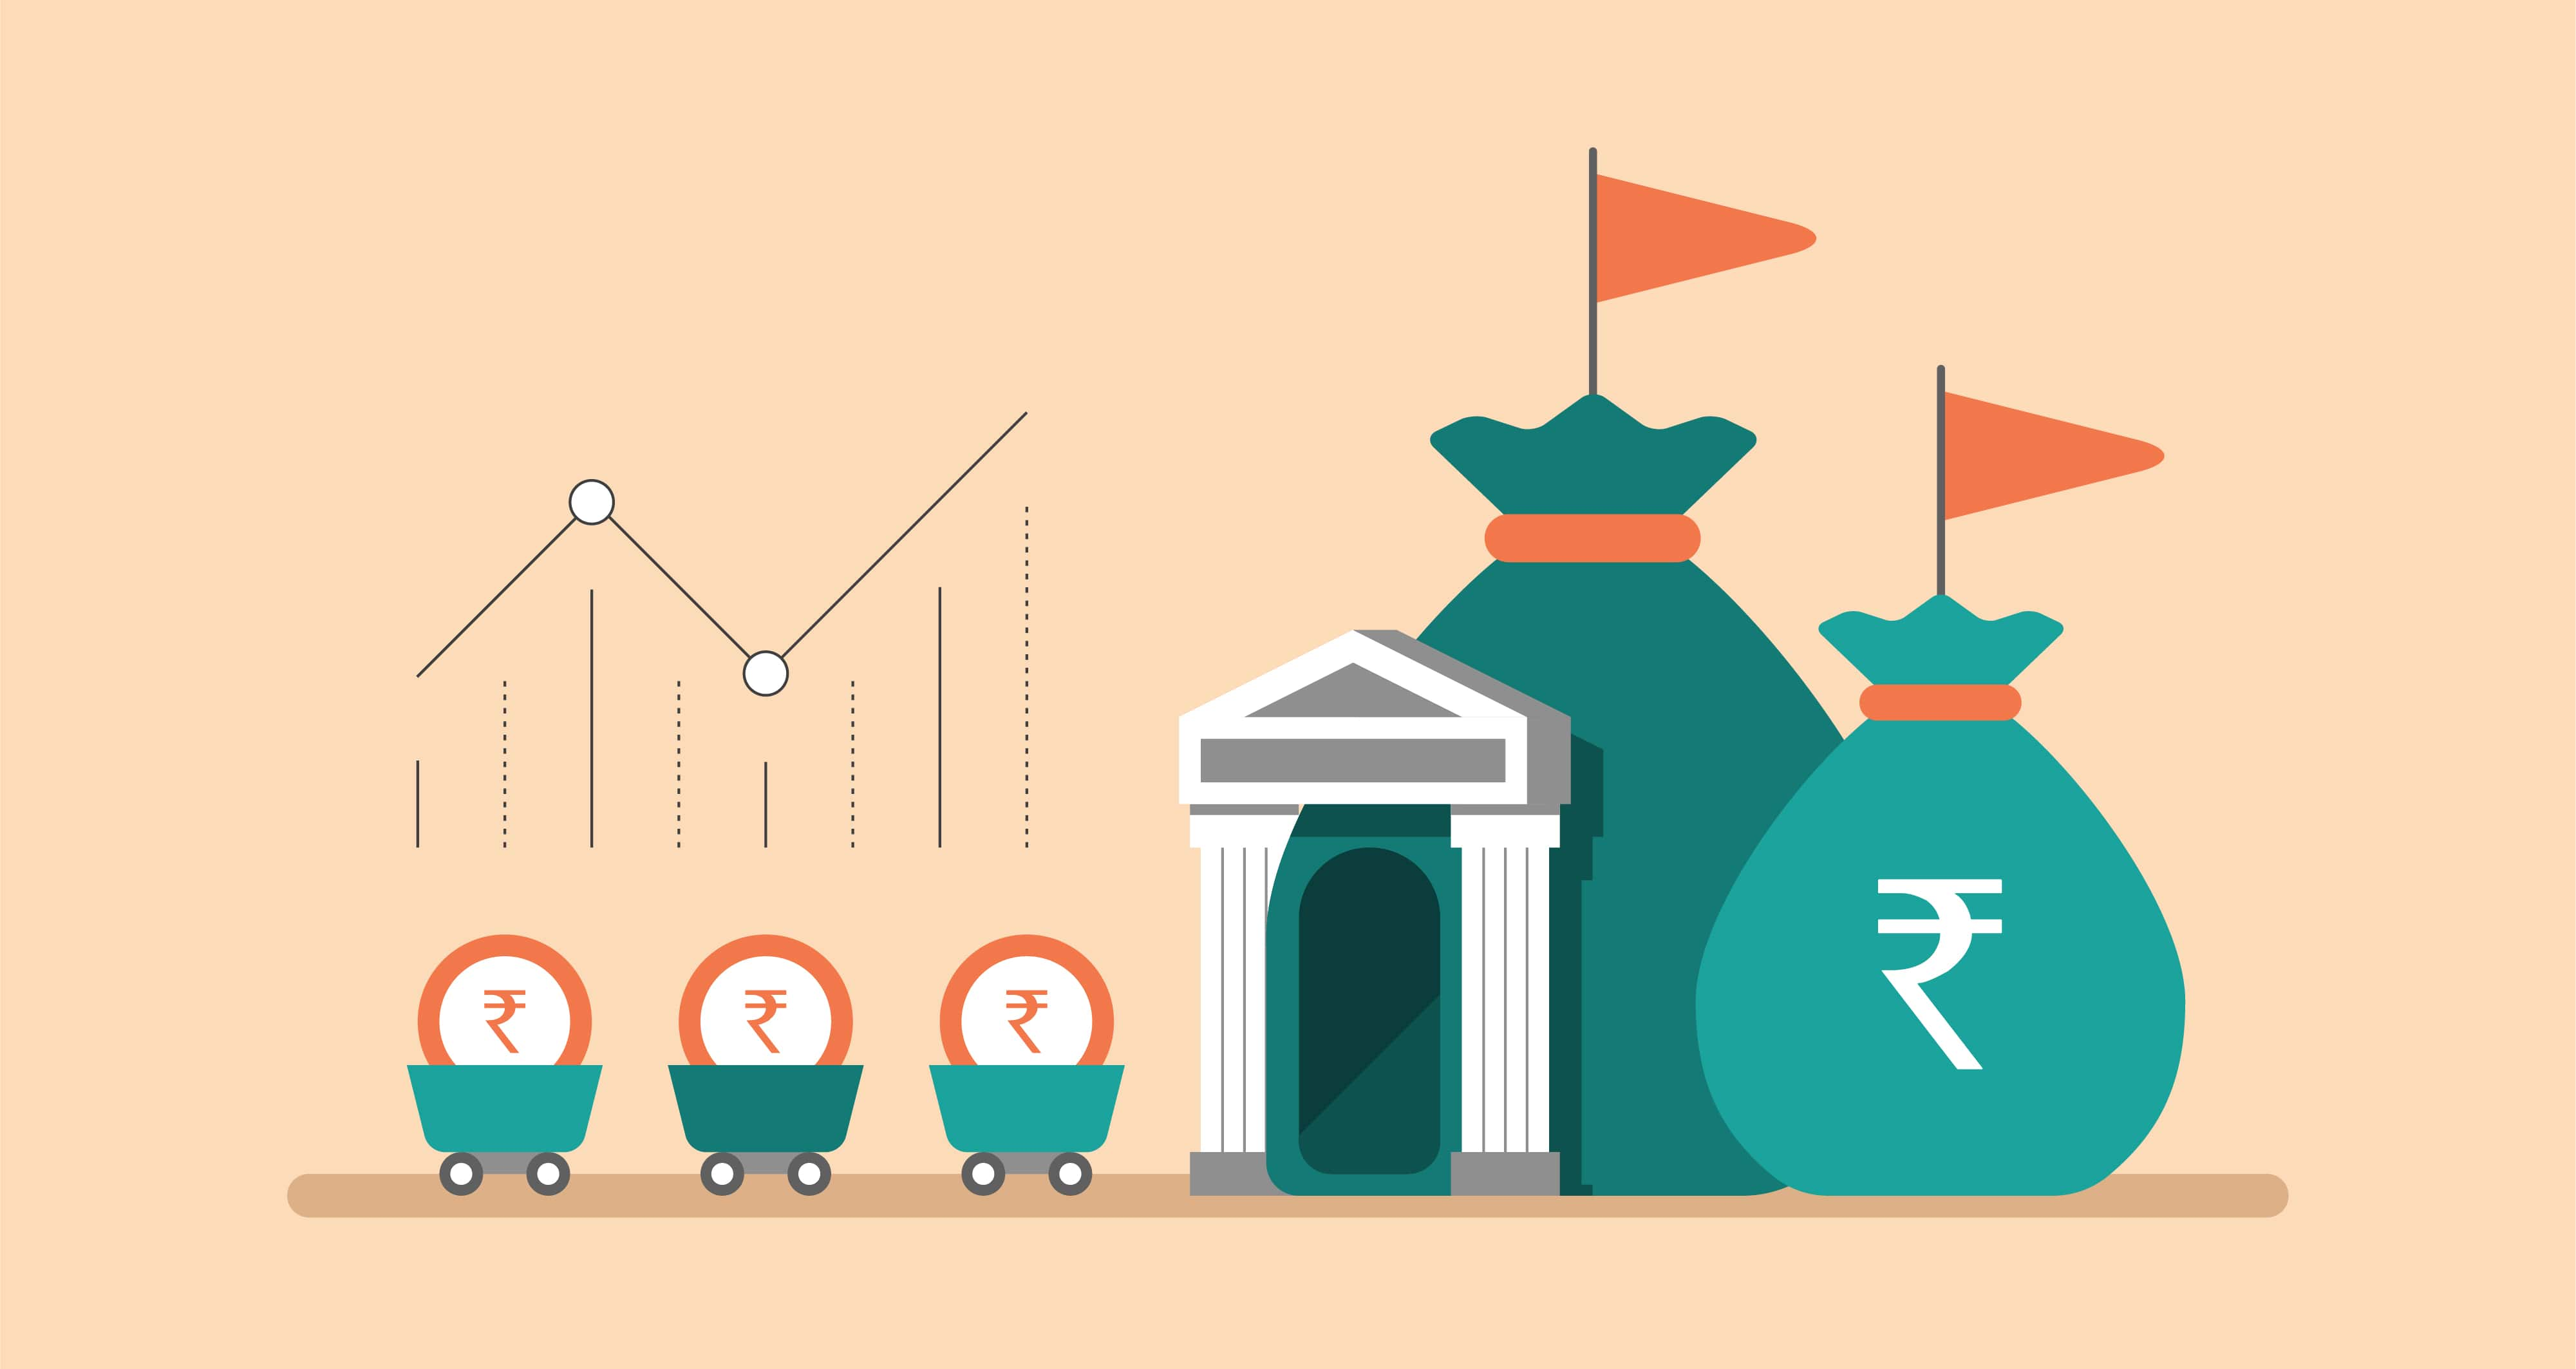 3 parameters to judge a mutual fund apart from past returns